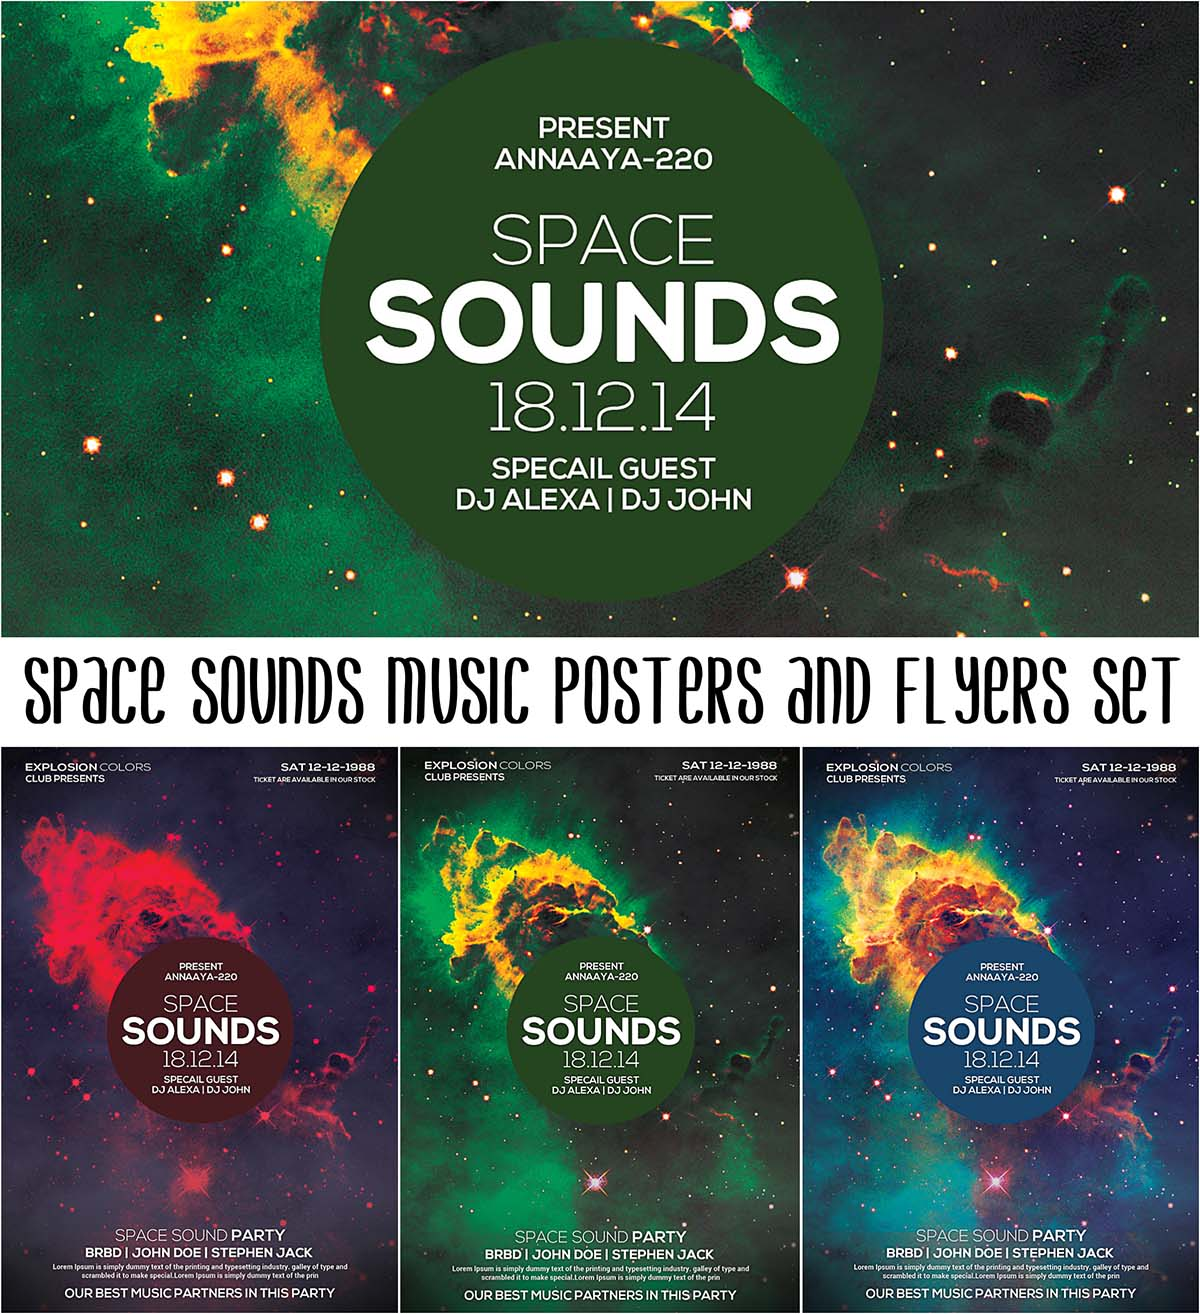 Space sounds music flyer set